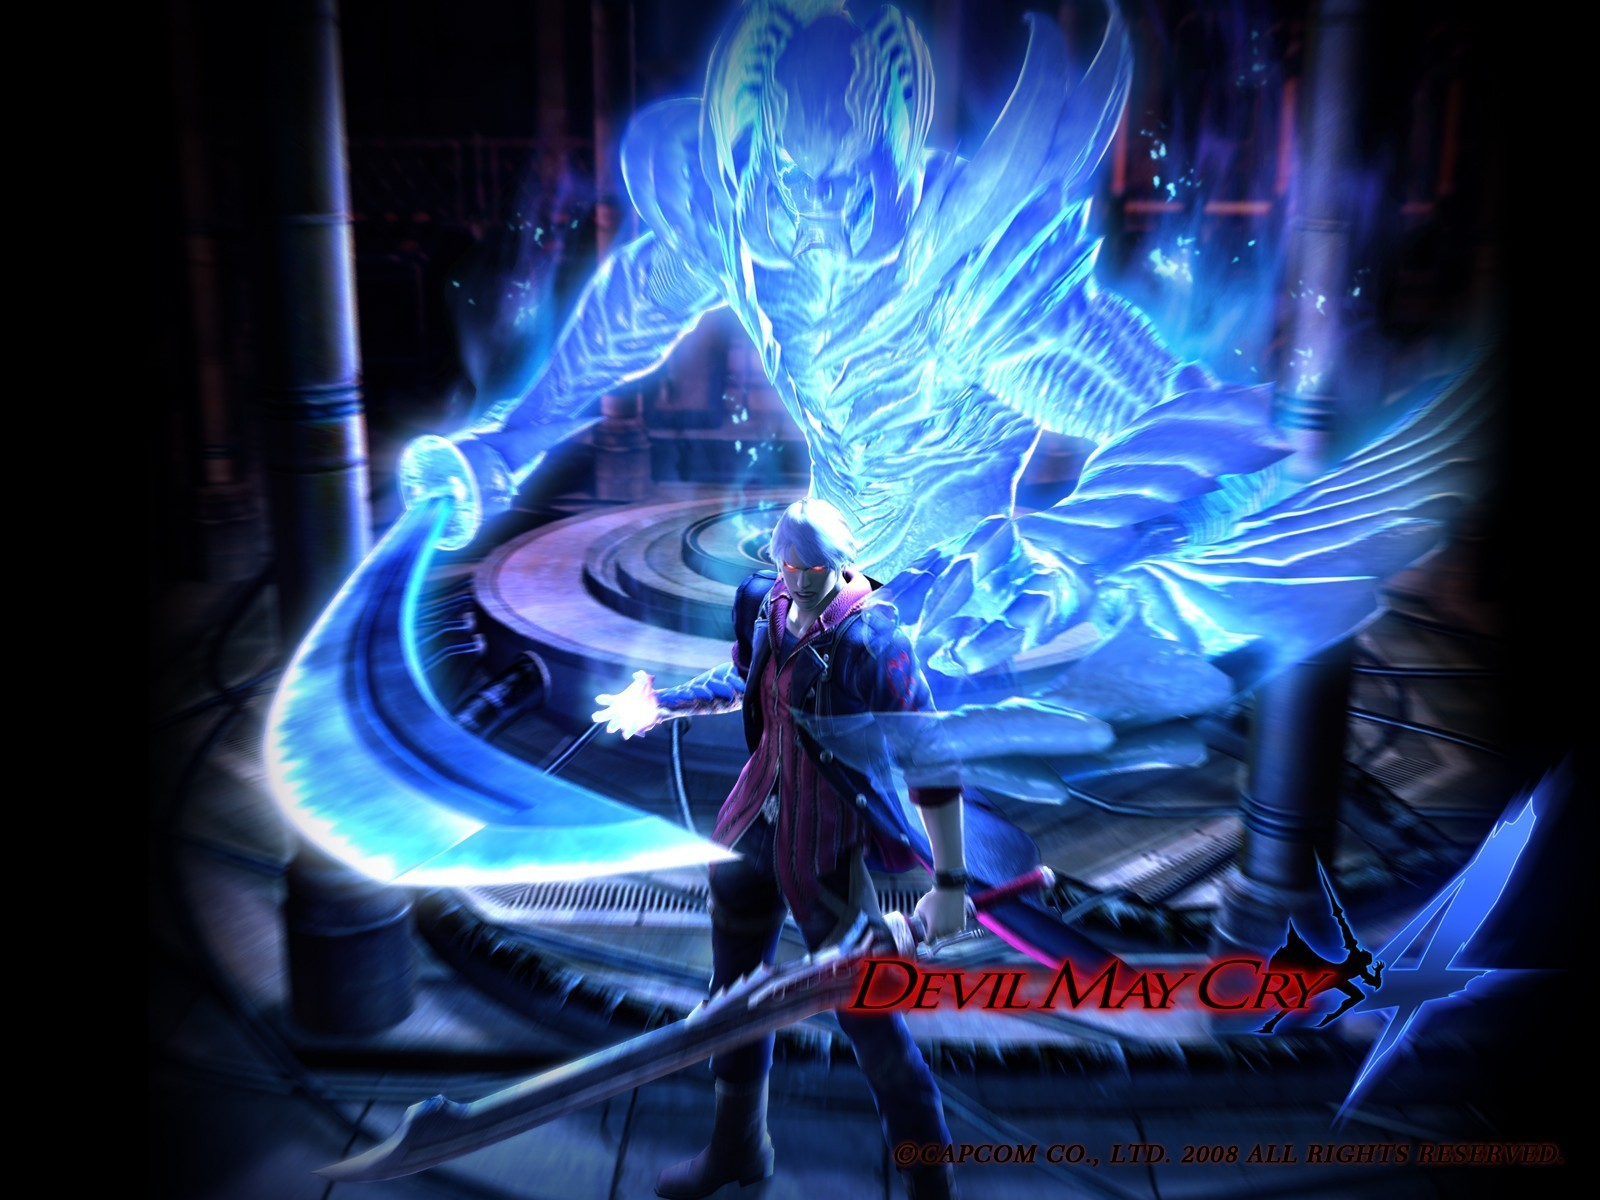 The sons of sparda images devil may cry 4 hd wallpaper and the sons of sparda images devil may cry 4 hd wallpaper and background photos voltagebd Images